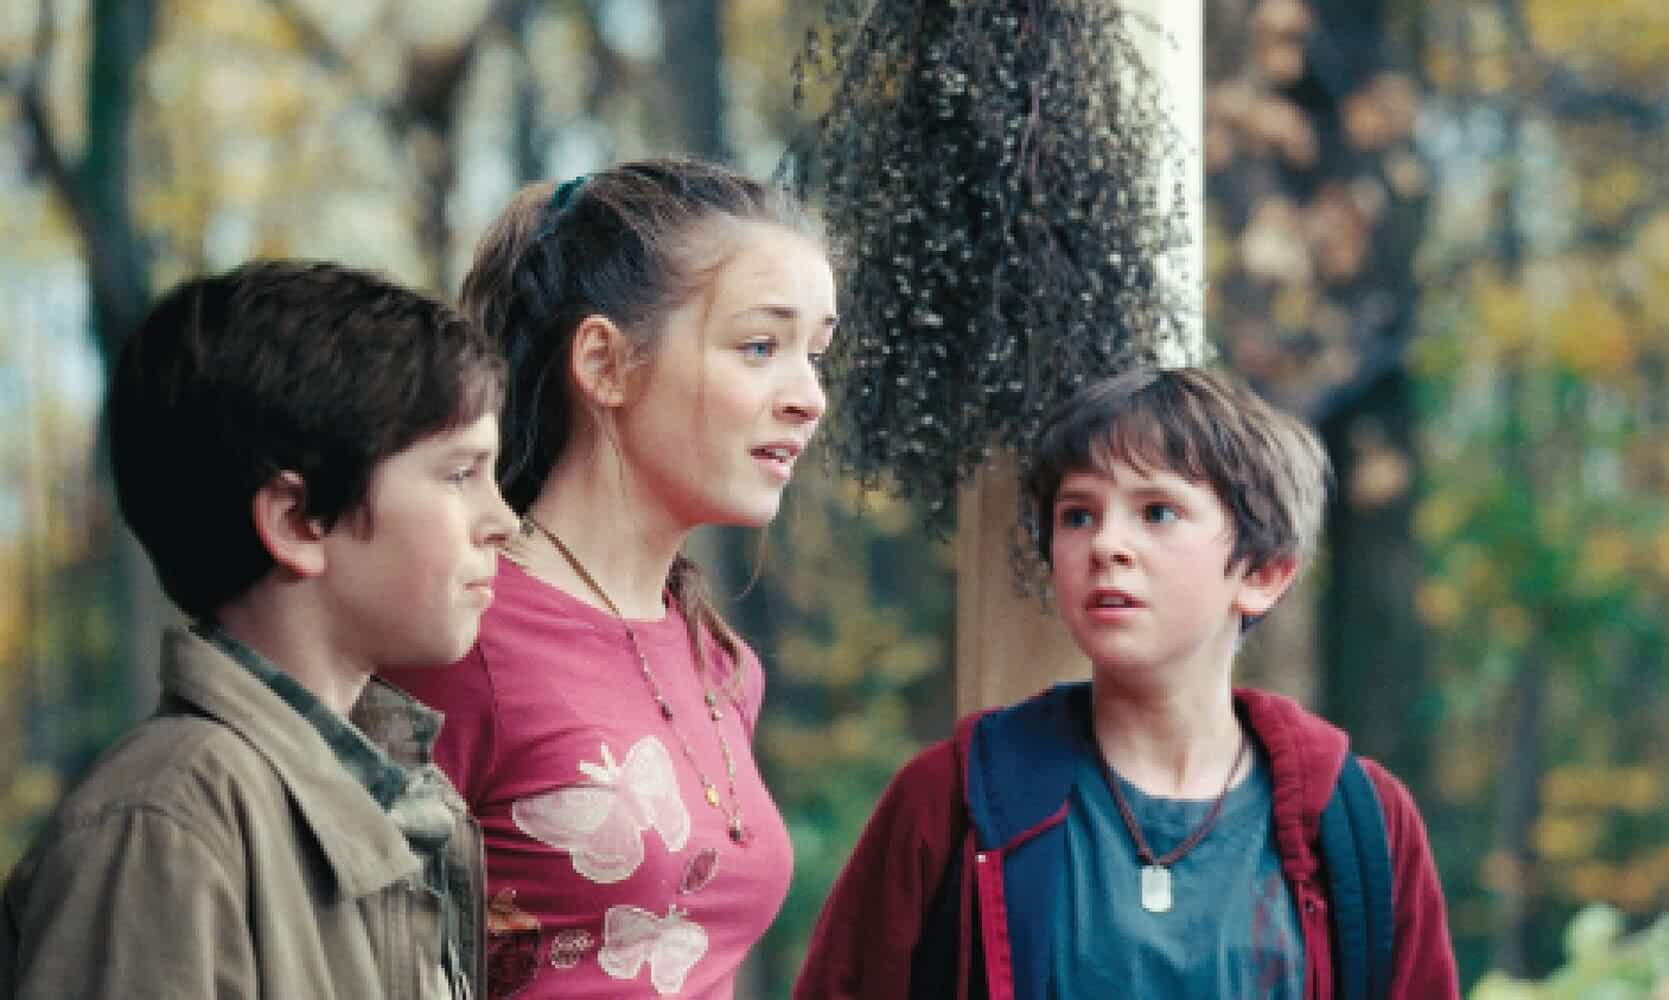 Sarah Bolger and Freddie Highmore in The Spiderwick Chronicles (2008)